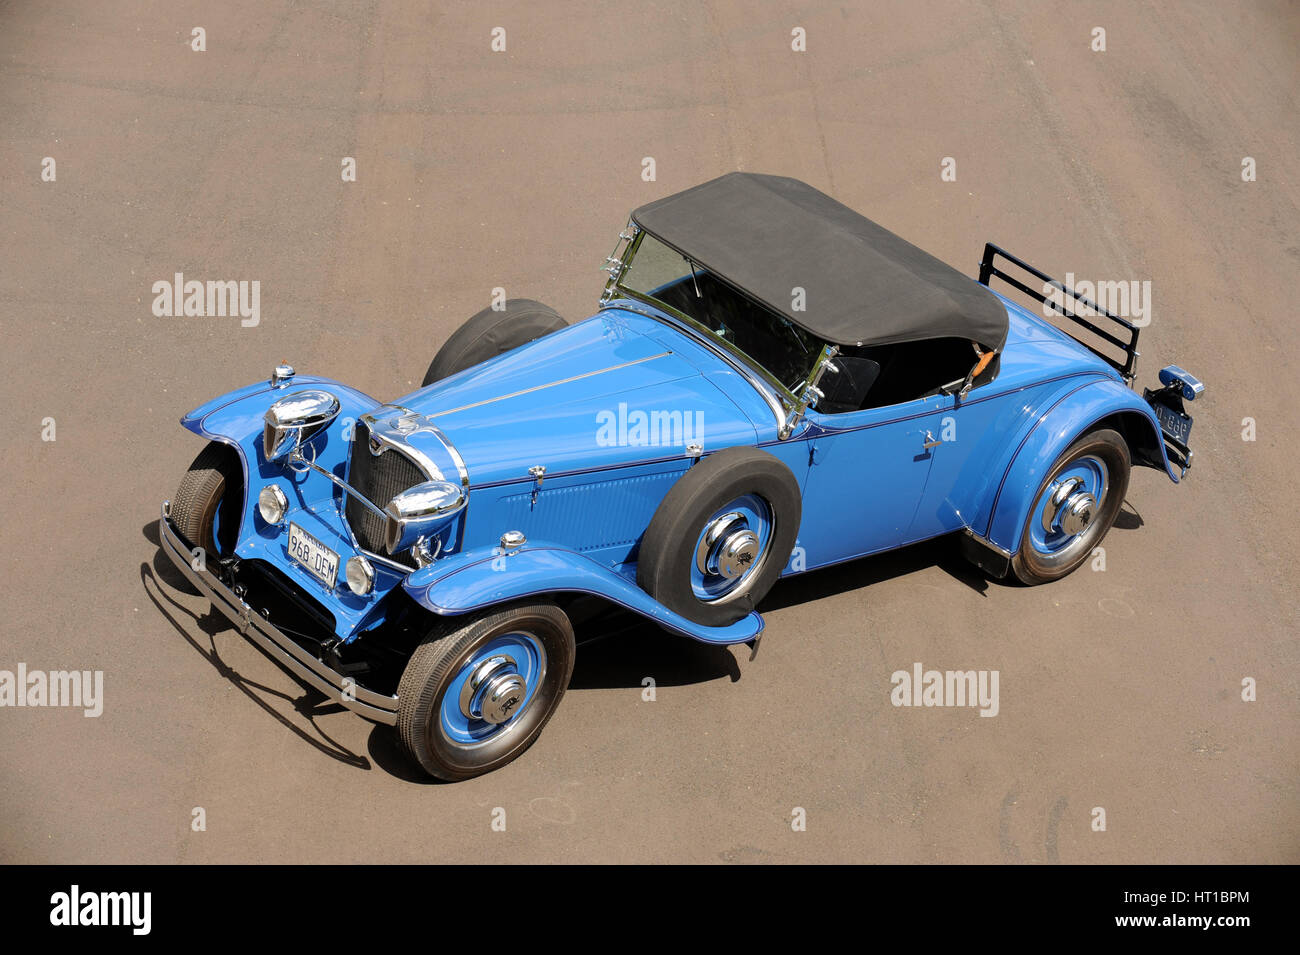 Ruxton model c roadster 1932. Artist: Simon Clay. - Stock Image